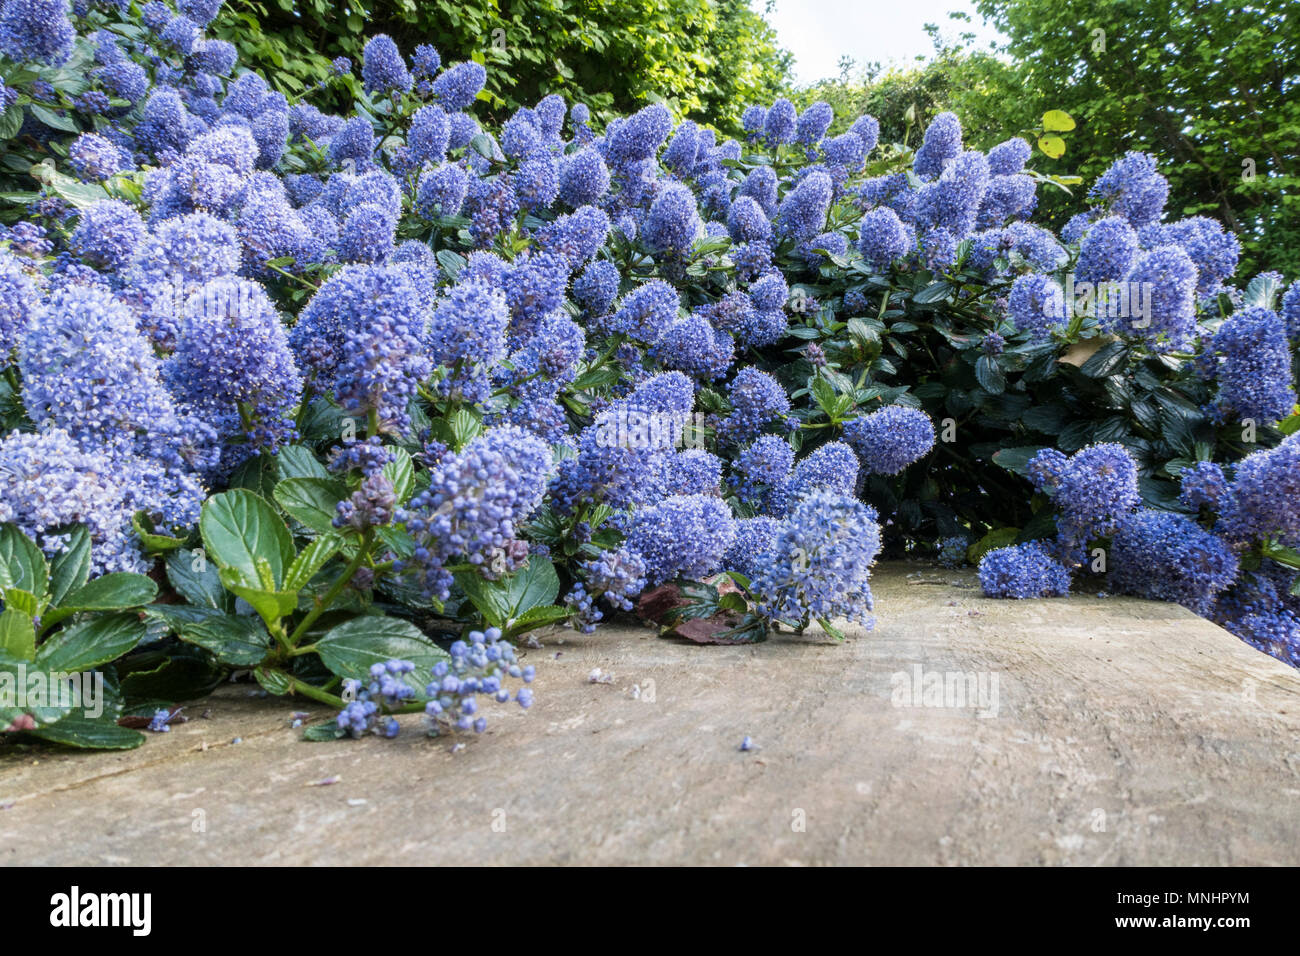 Ceanothus thyrsiflorus repens growing along and down a wall of railway sleepers. - Stock Image